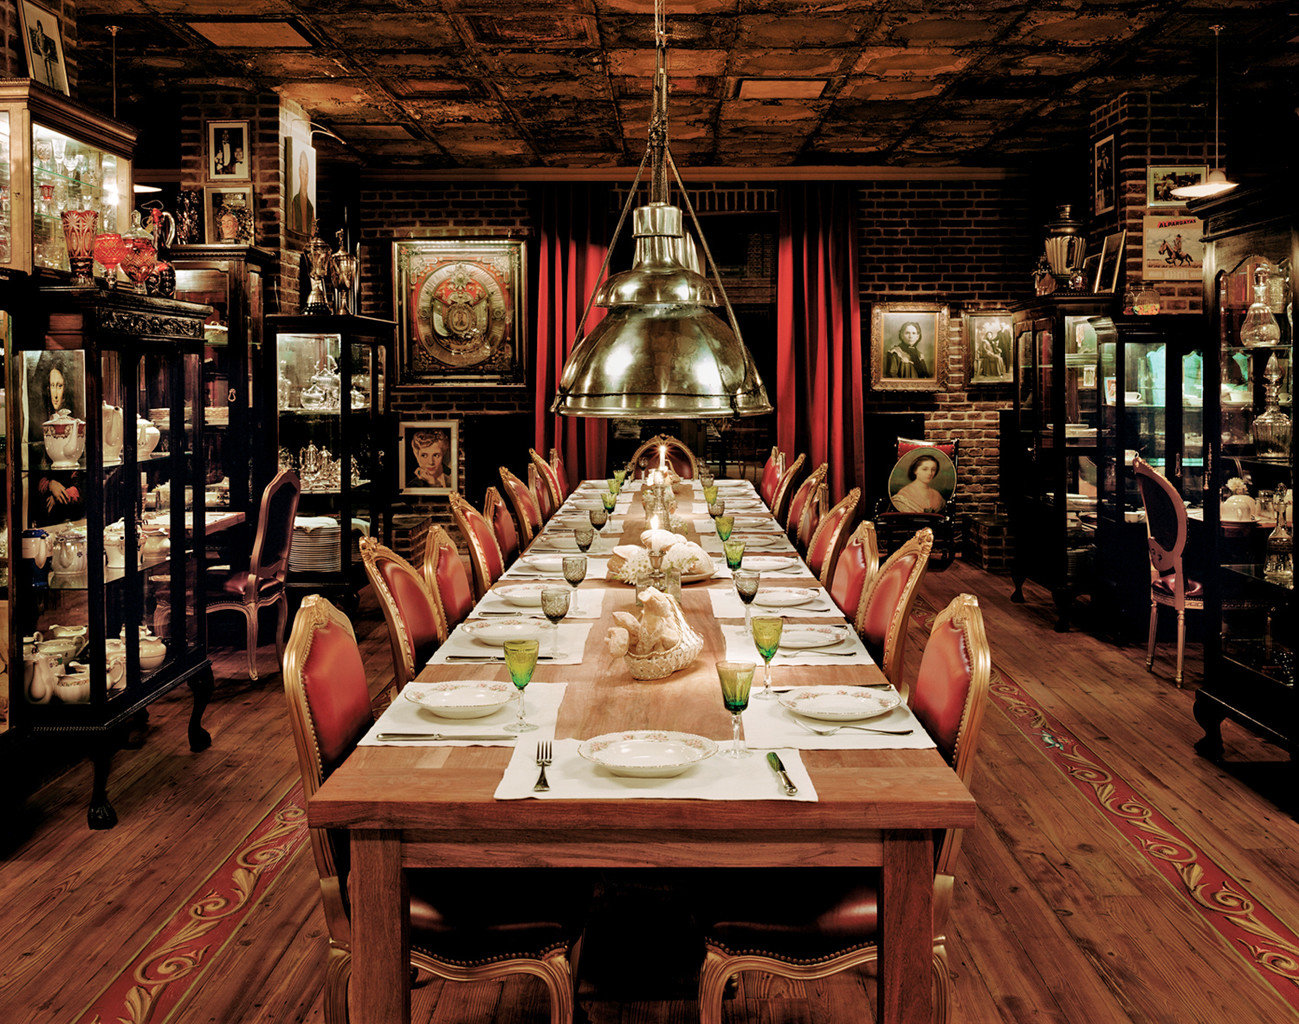 Boutique Hotels Cultural Dining Eat Elegant Historic Luxury Luxury Travel table indoor man made object restaurant tavern Bar wooden Drink dining room